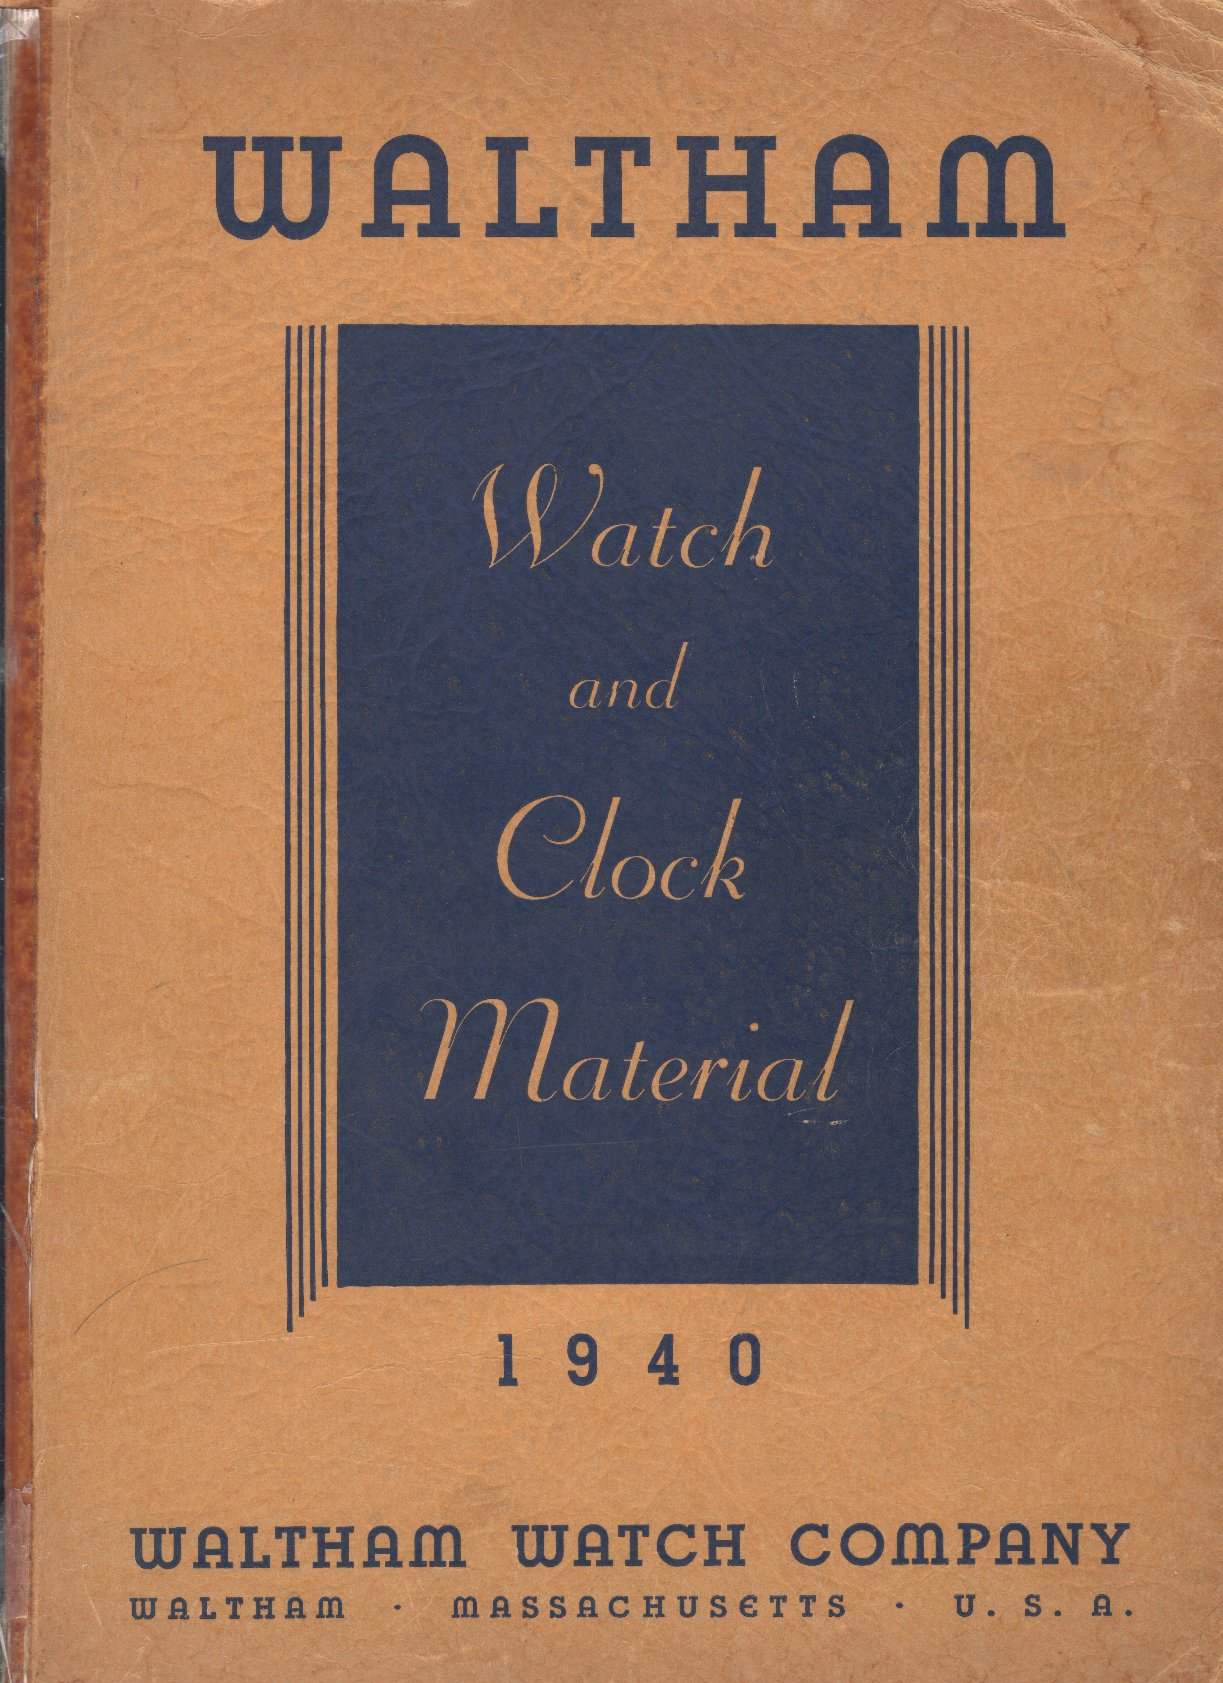 1940 Waltham Watch and Clock Material Catalog Cover Image